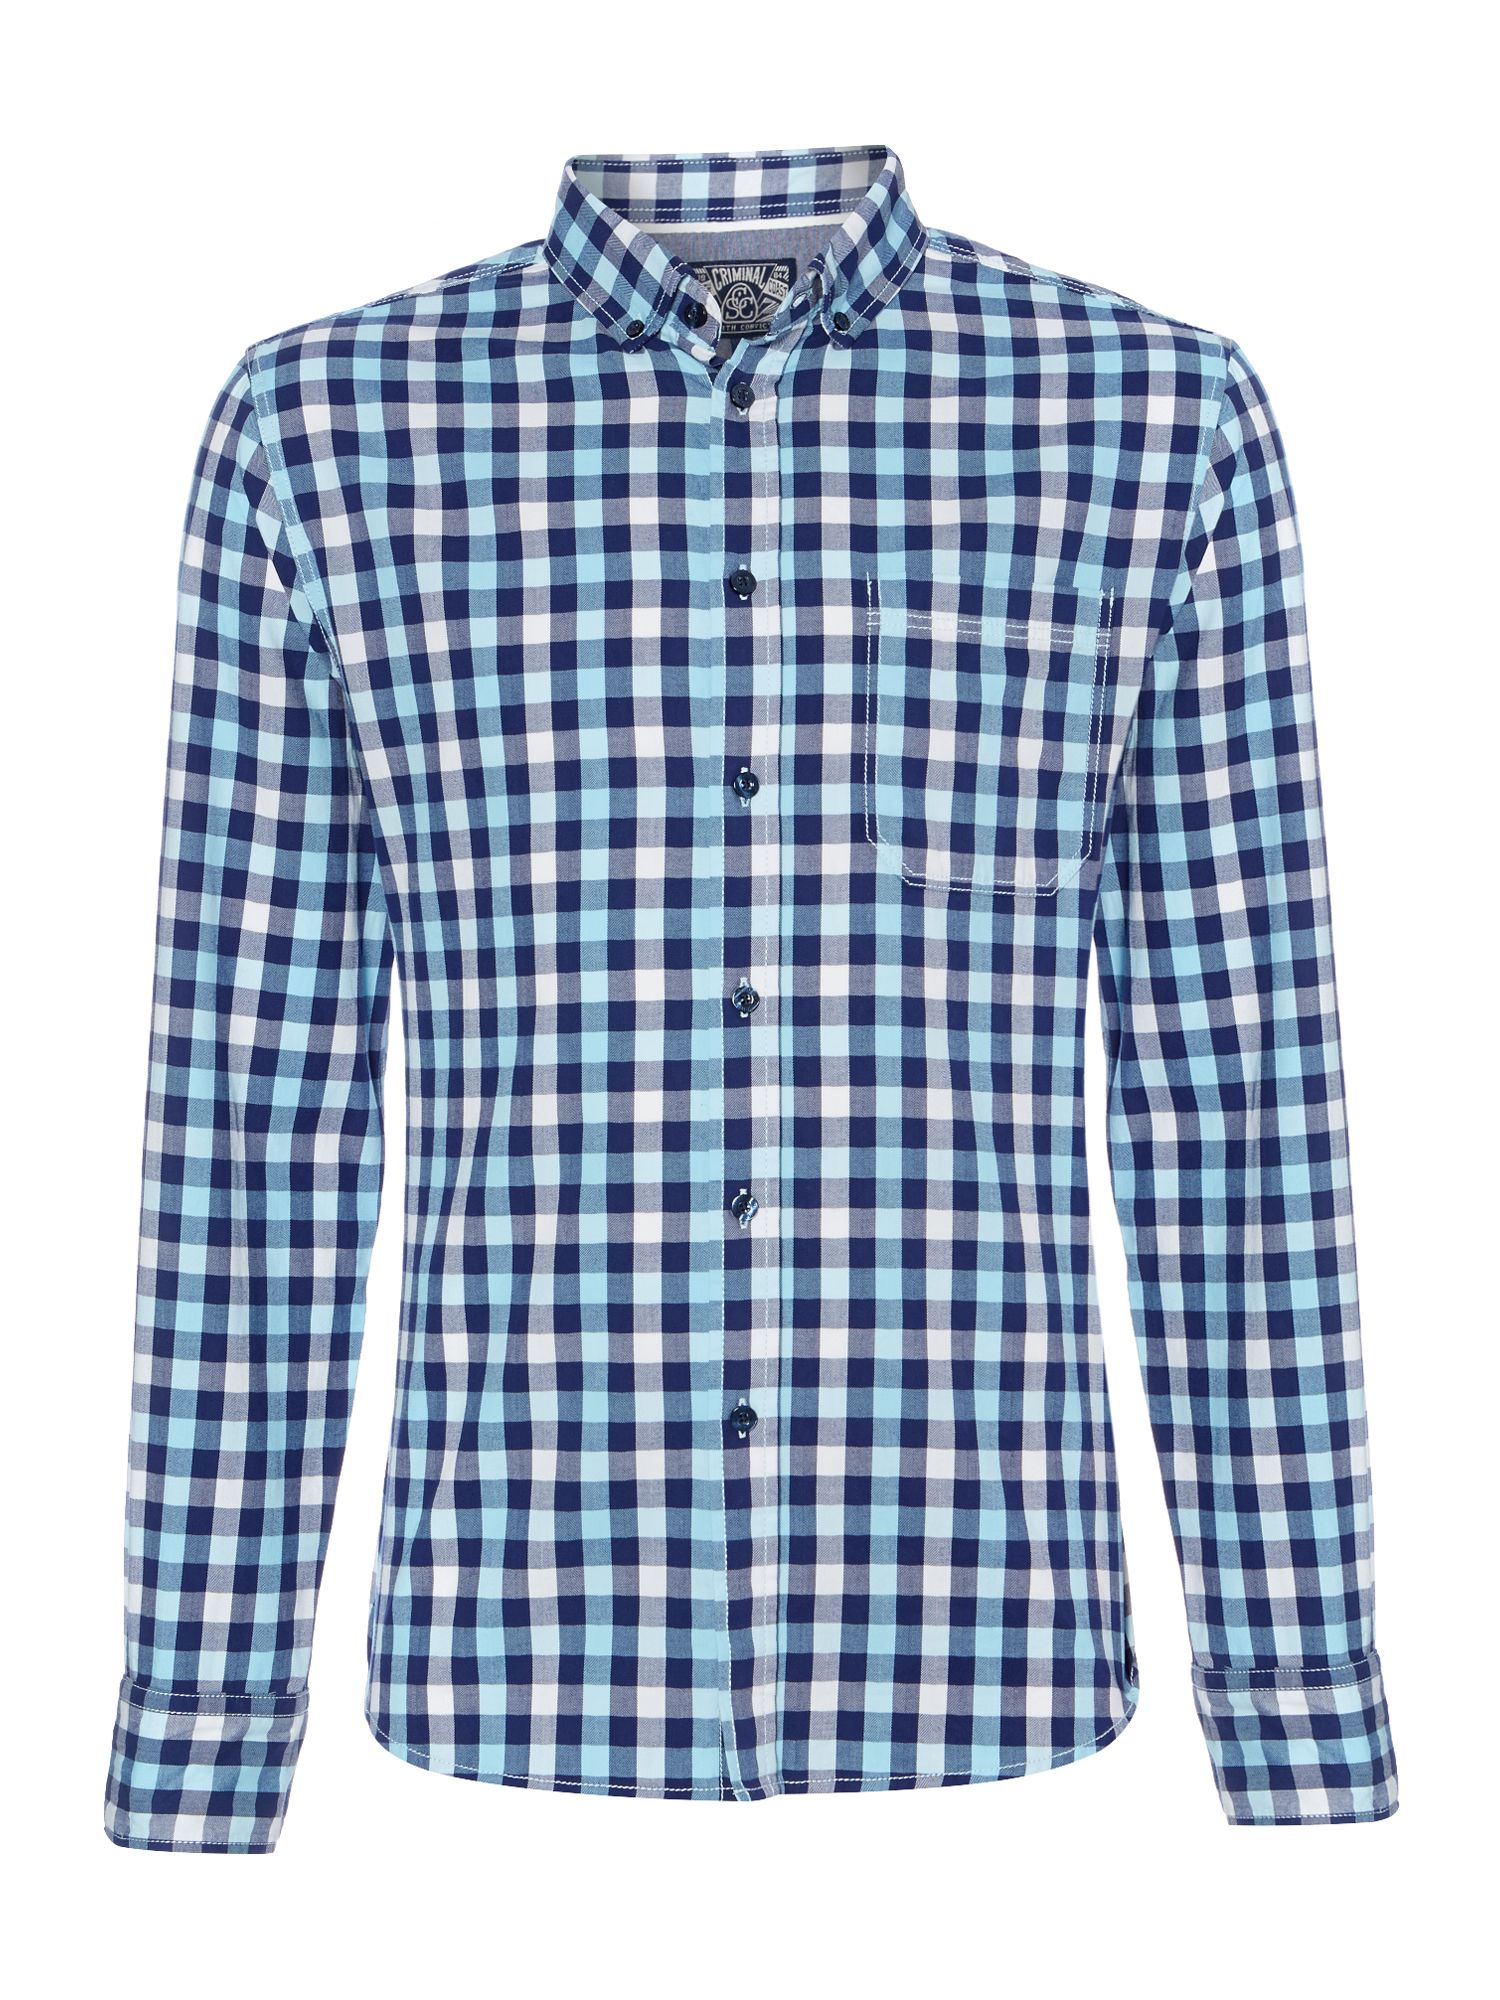 Vegas gingham long sleeved shirt